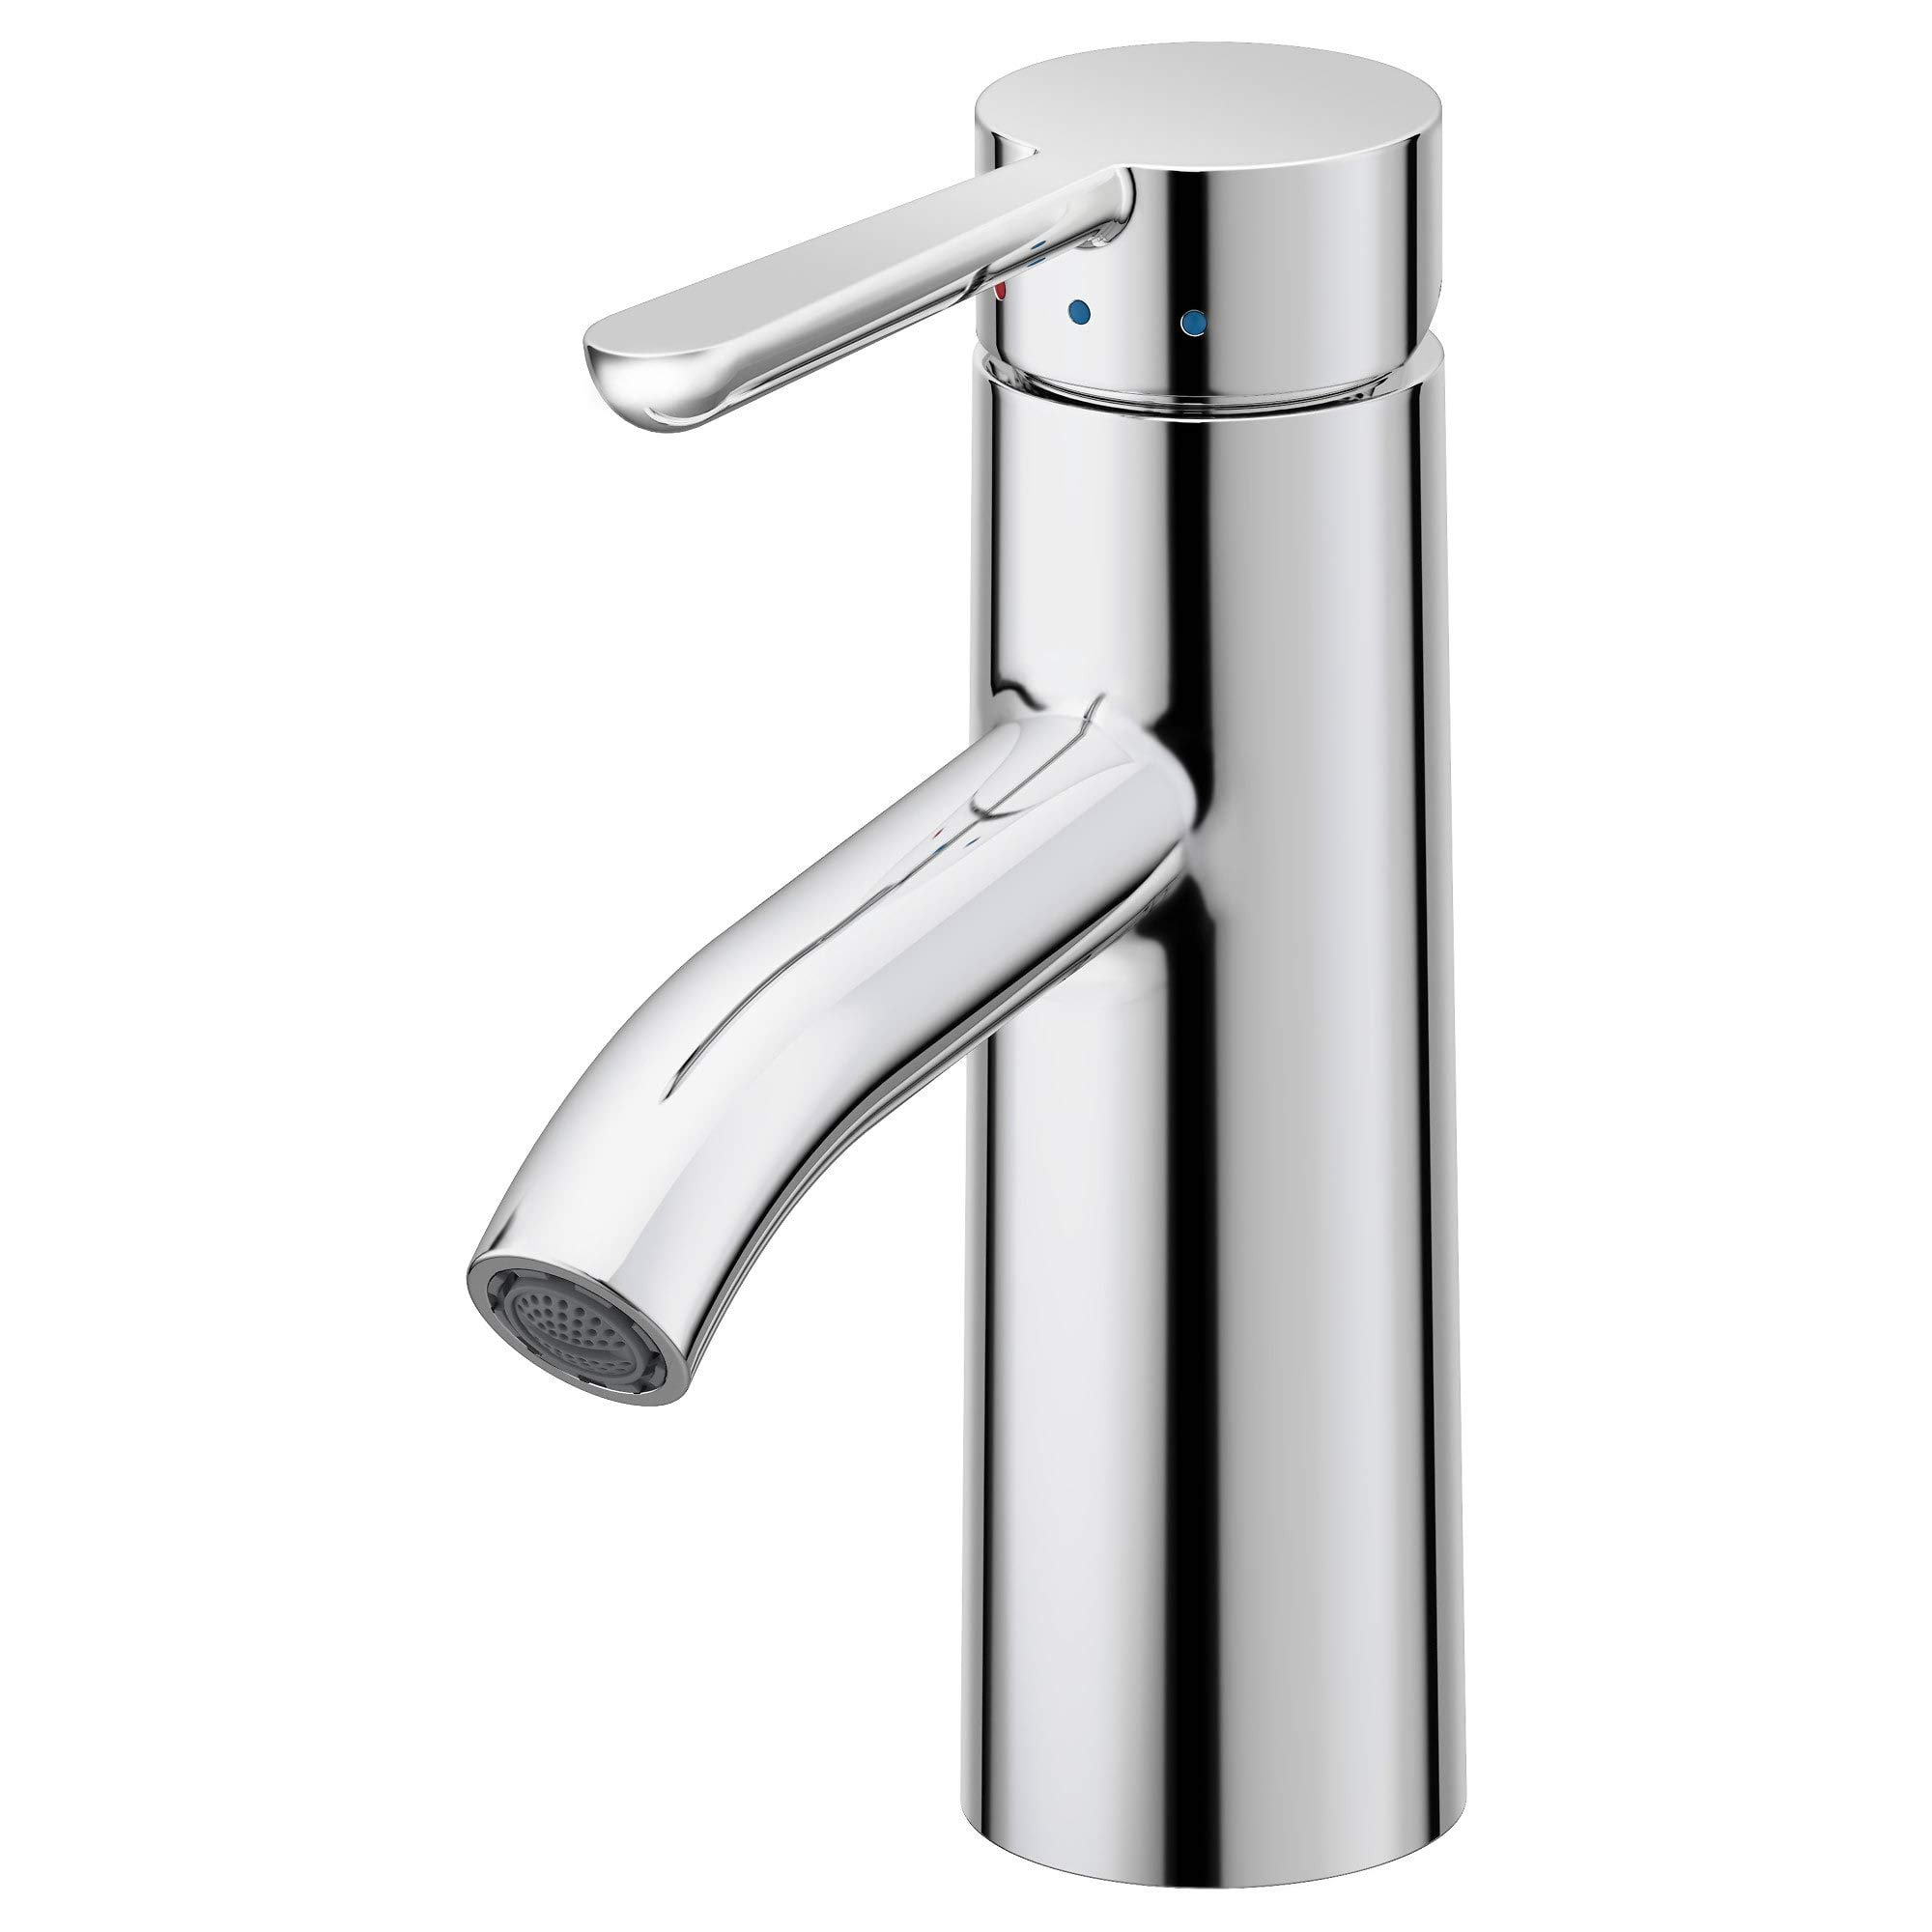 IKEA 202.812.97 Dalskär Bath Faucet with Strainer, Chrome Plated by IKEA..